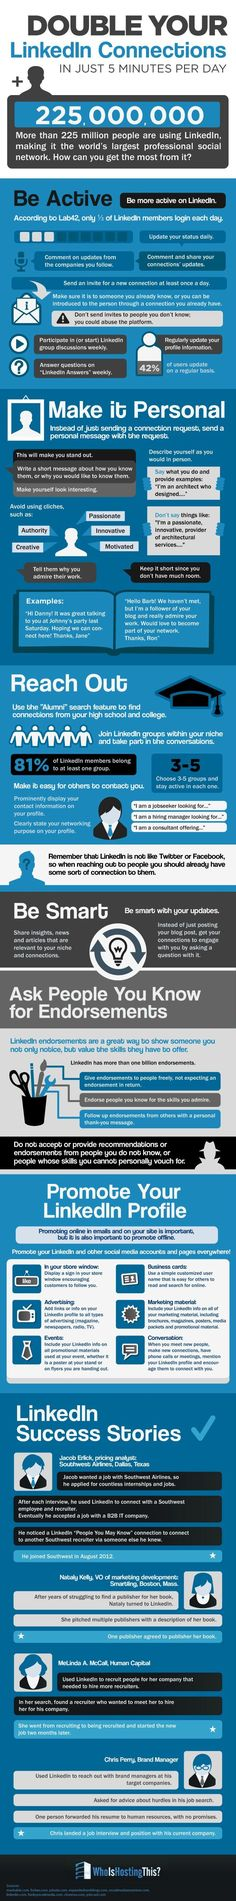 [INFOGRAPHIC] 10 Simple Tips to Double your LinkedIn Connections: Update; Groups; Follow; Invite; Endorse; Promote; Tweet; Links; Info; Details.